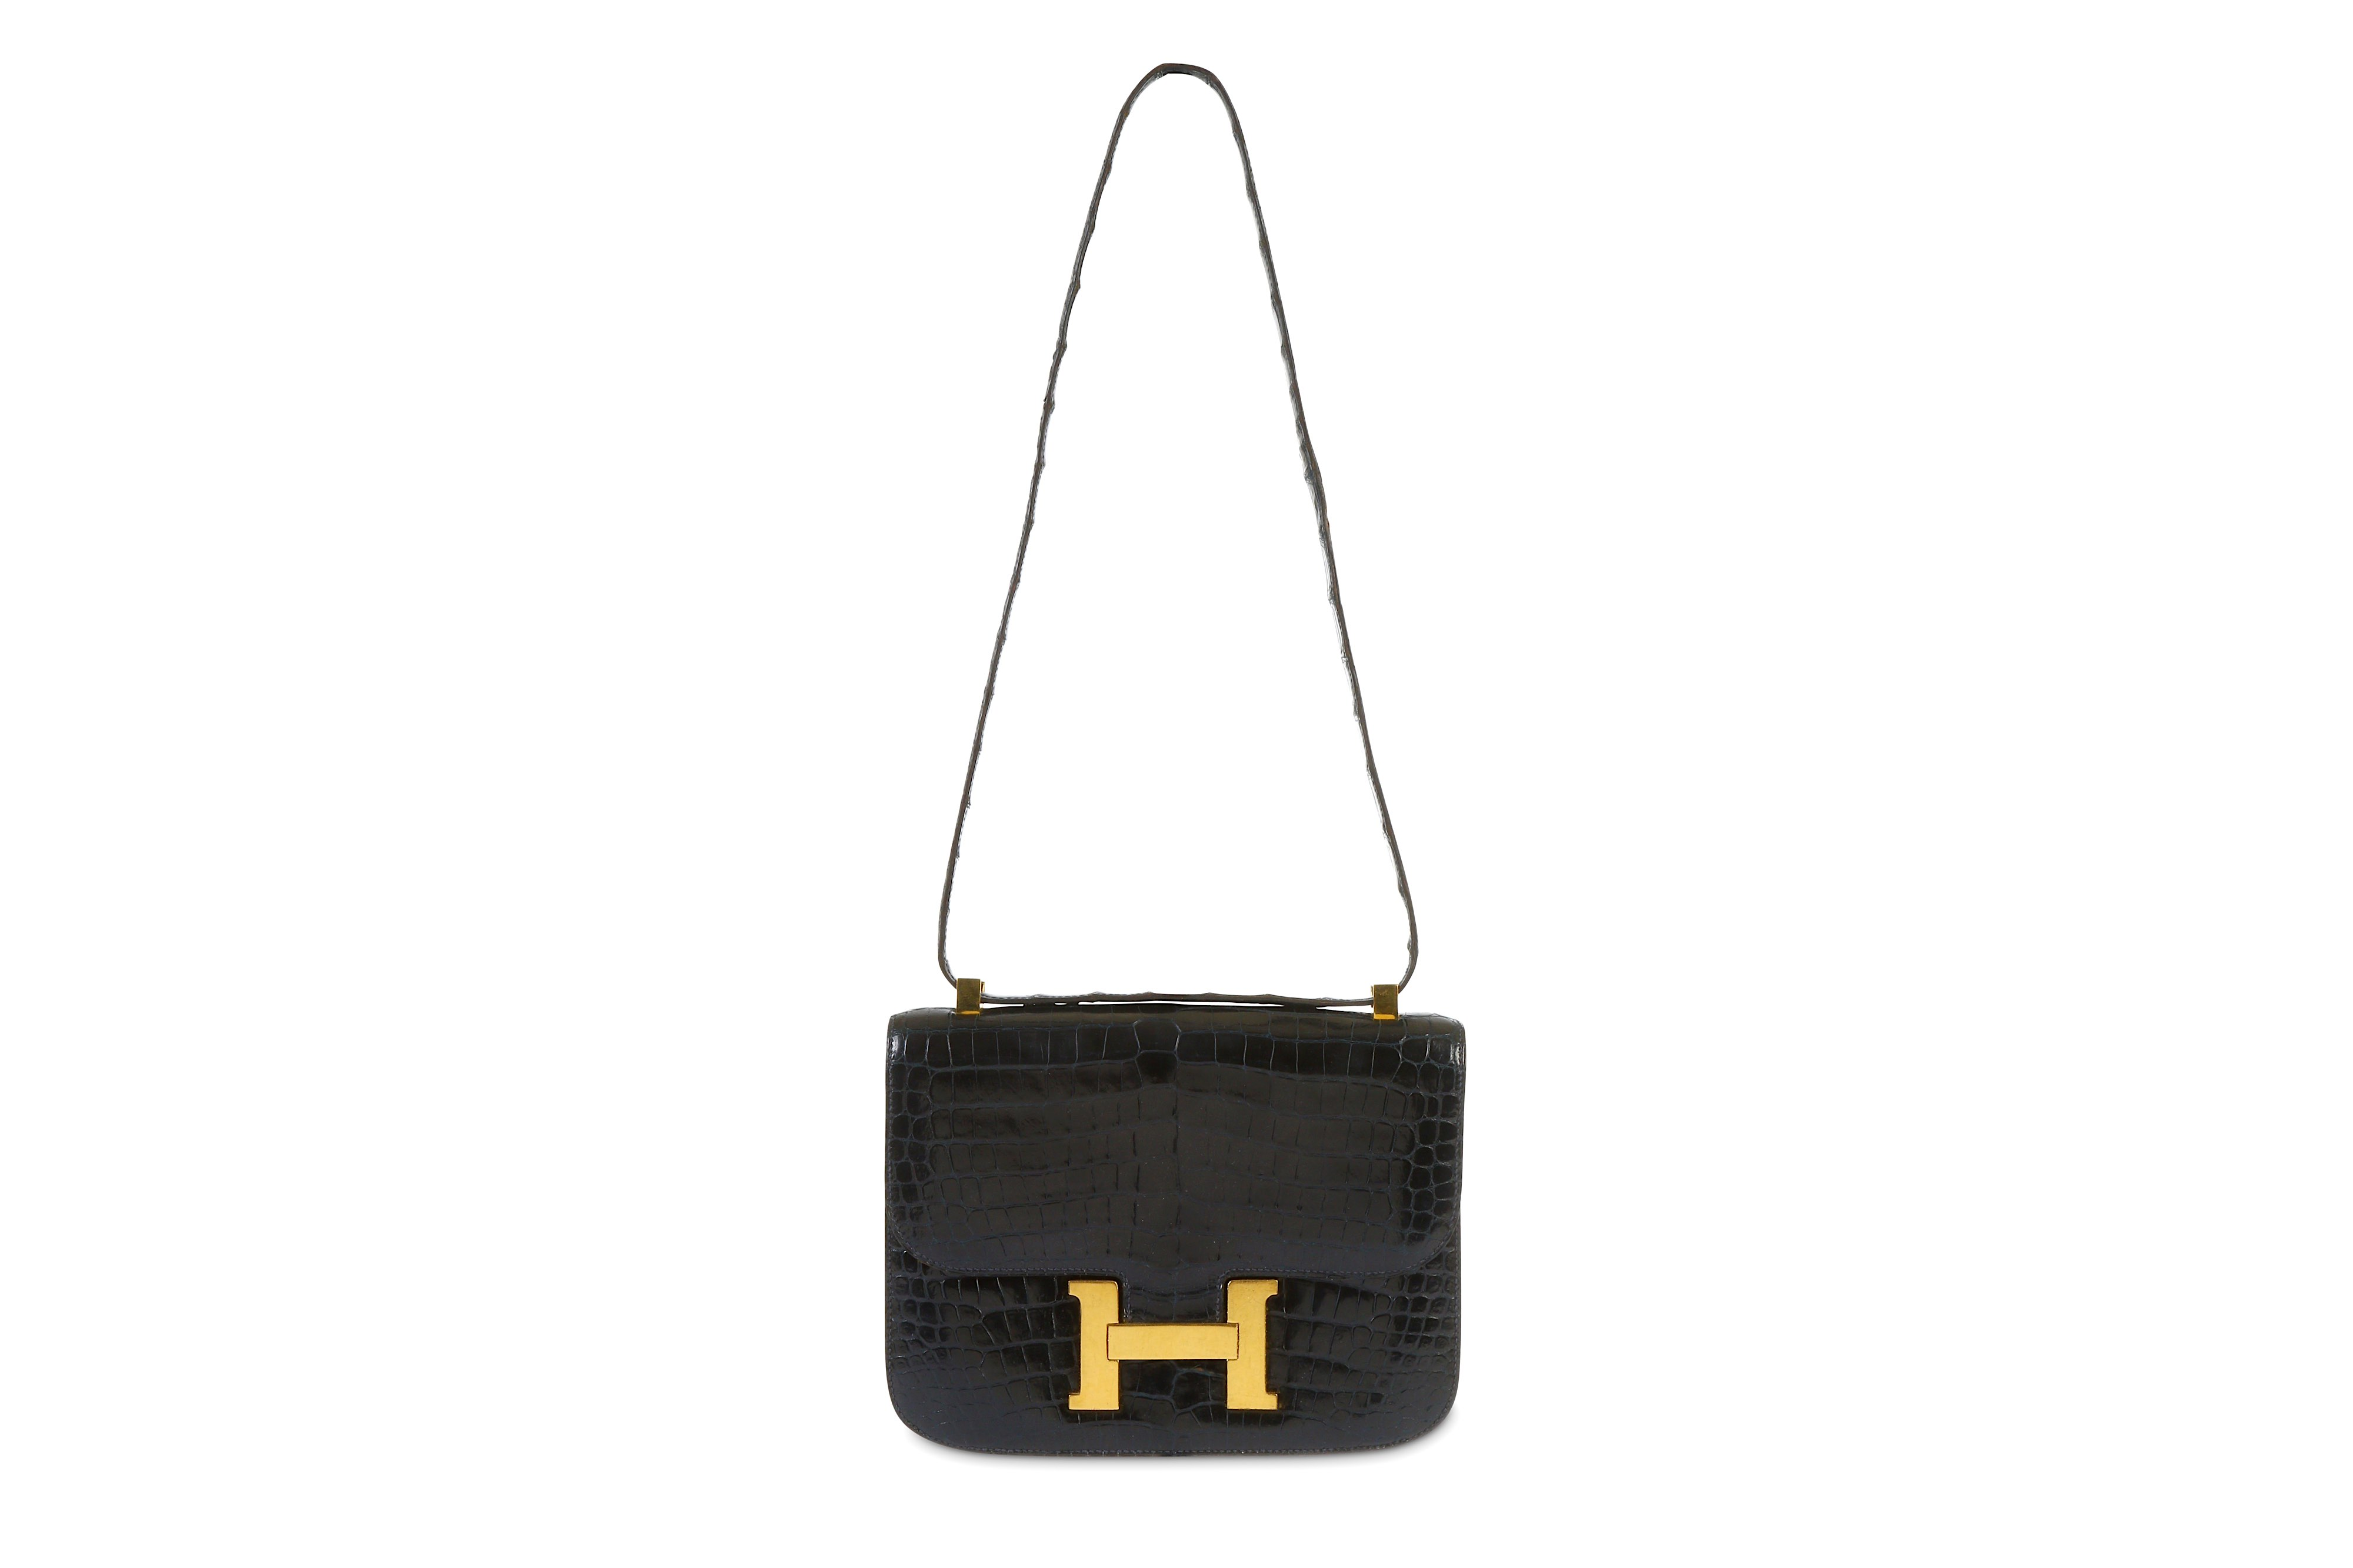 Lot 239 - Hermès Black Crocodile Constance 25